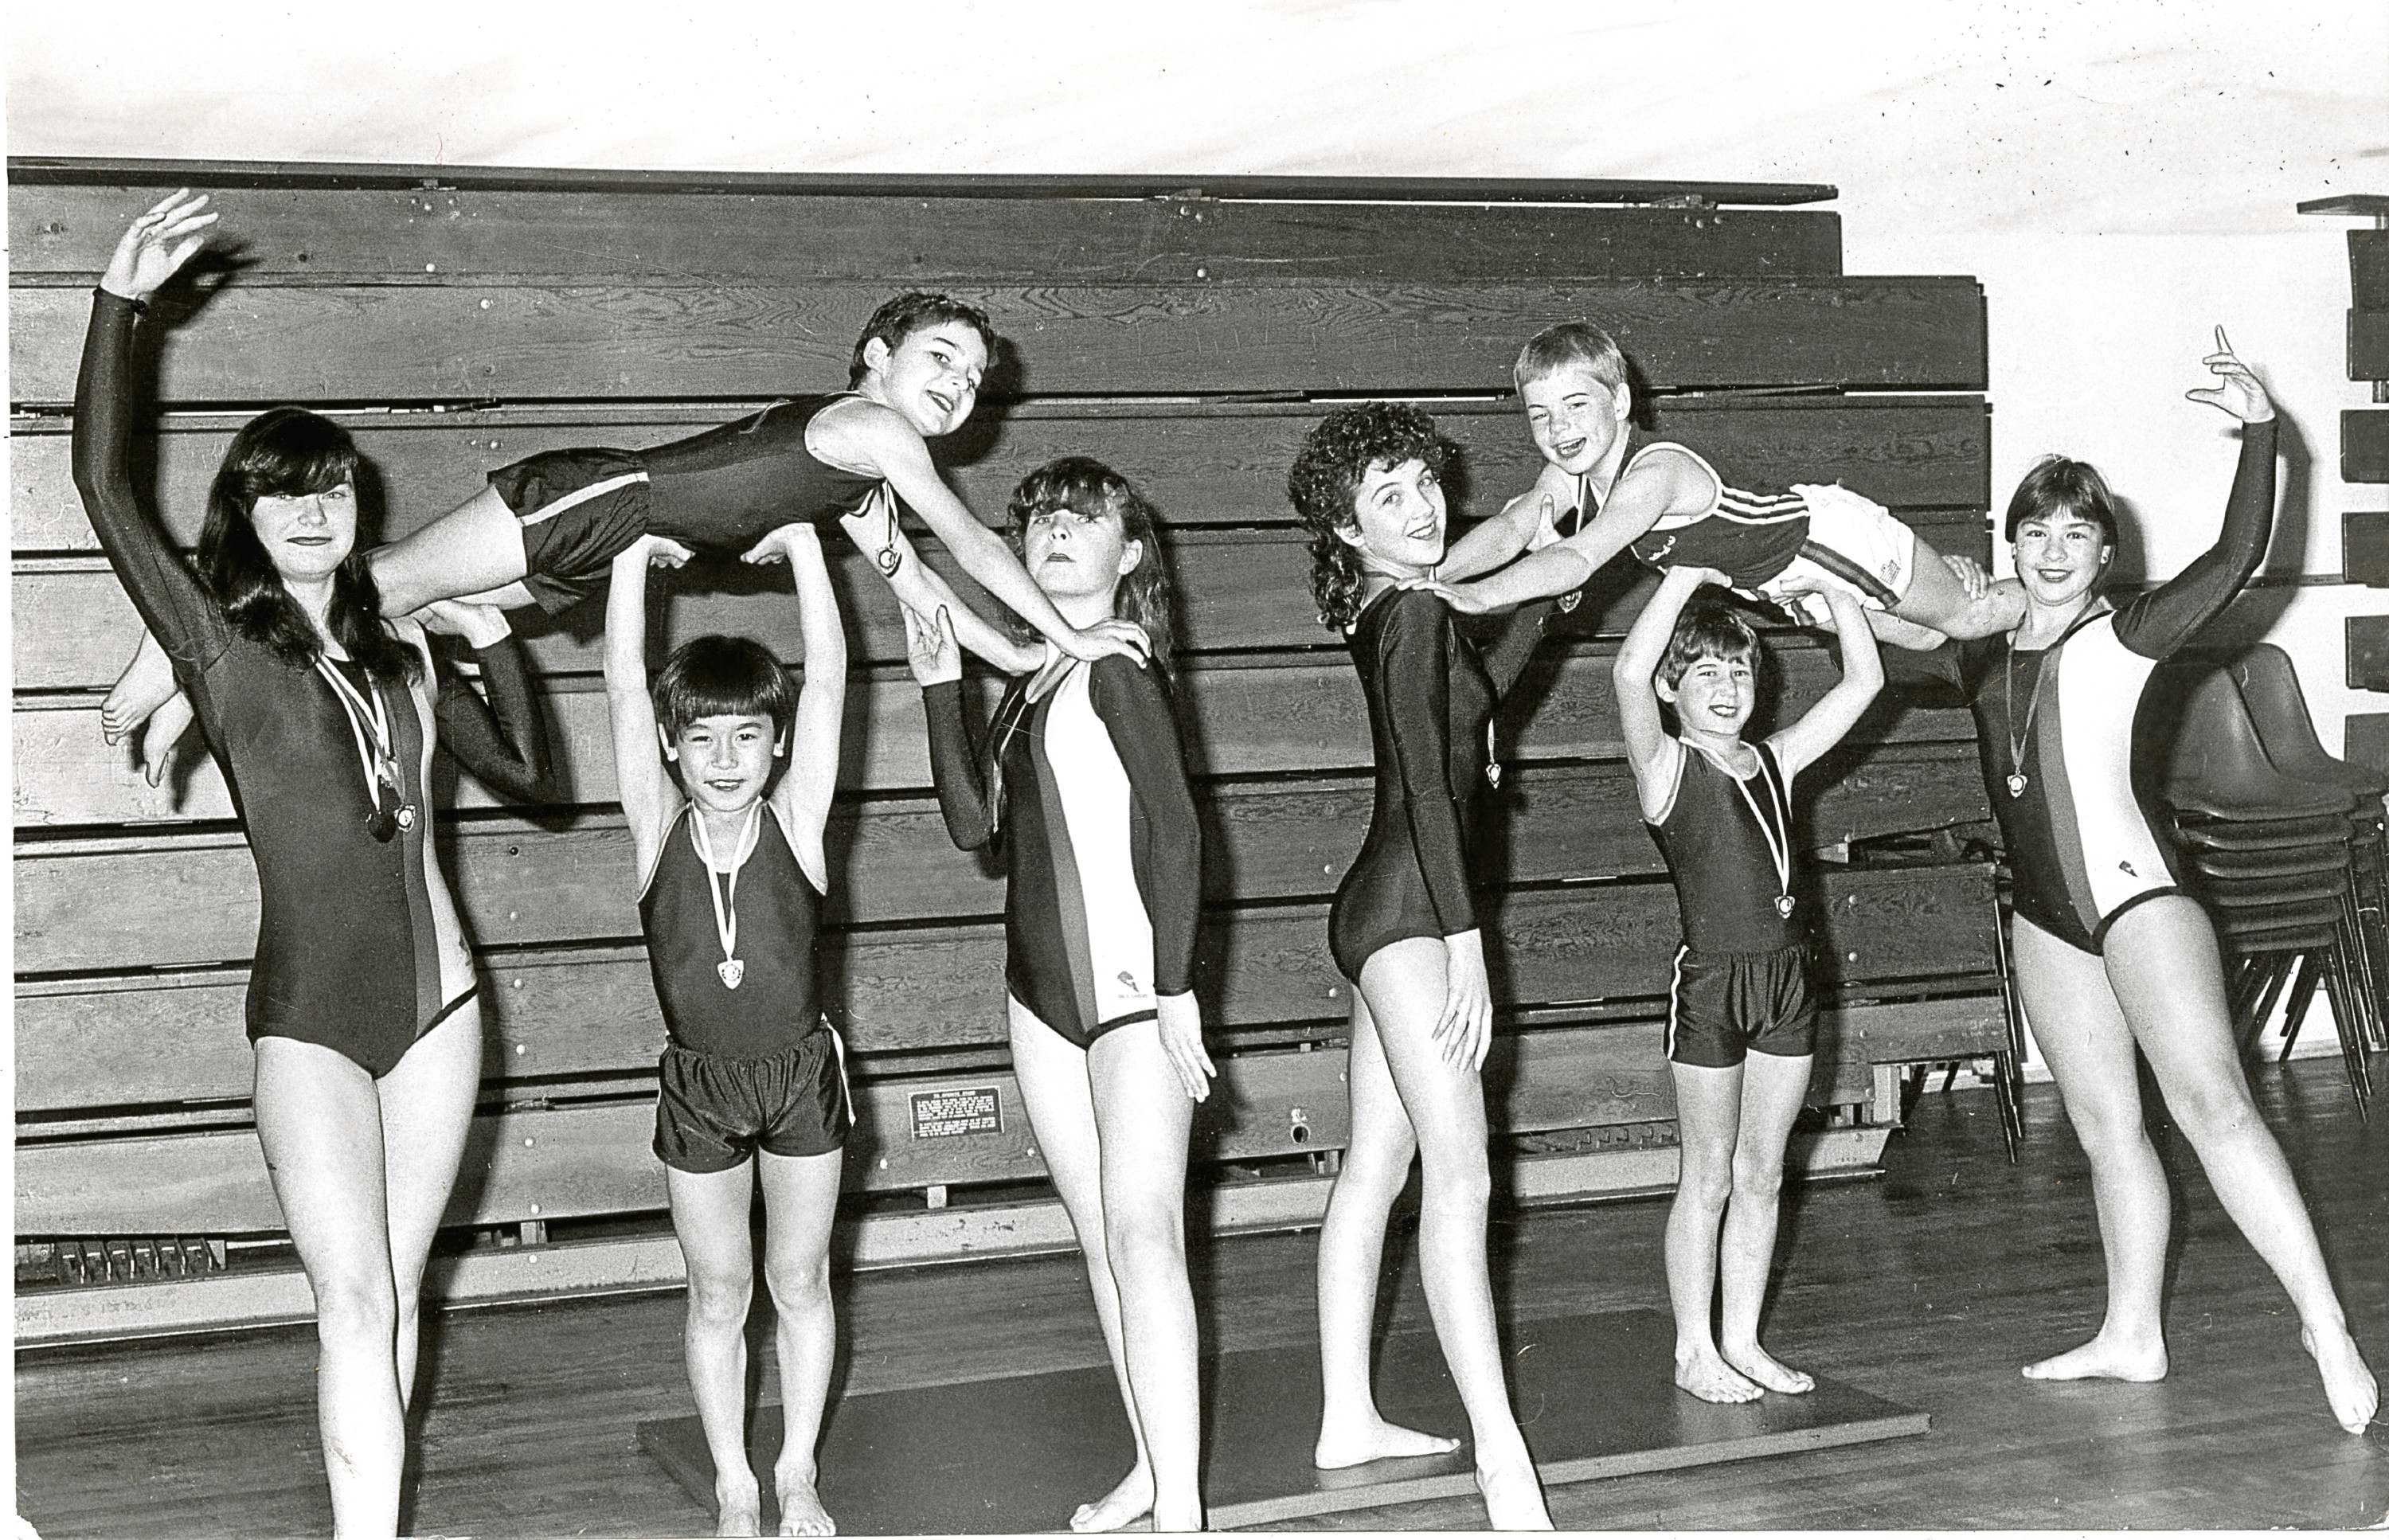 Gymnasts from St John's High School and St Joseph's Primary, Dundee pictured at Dudhope Arts Centre.  L-R: Hilary Duffy, Christopher Wylie, Ien-Soun_ly, Lesley Duffie, Kathryn Ruddy, Johnathan Lothian, Neil Boylan and Anne Barnett